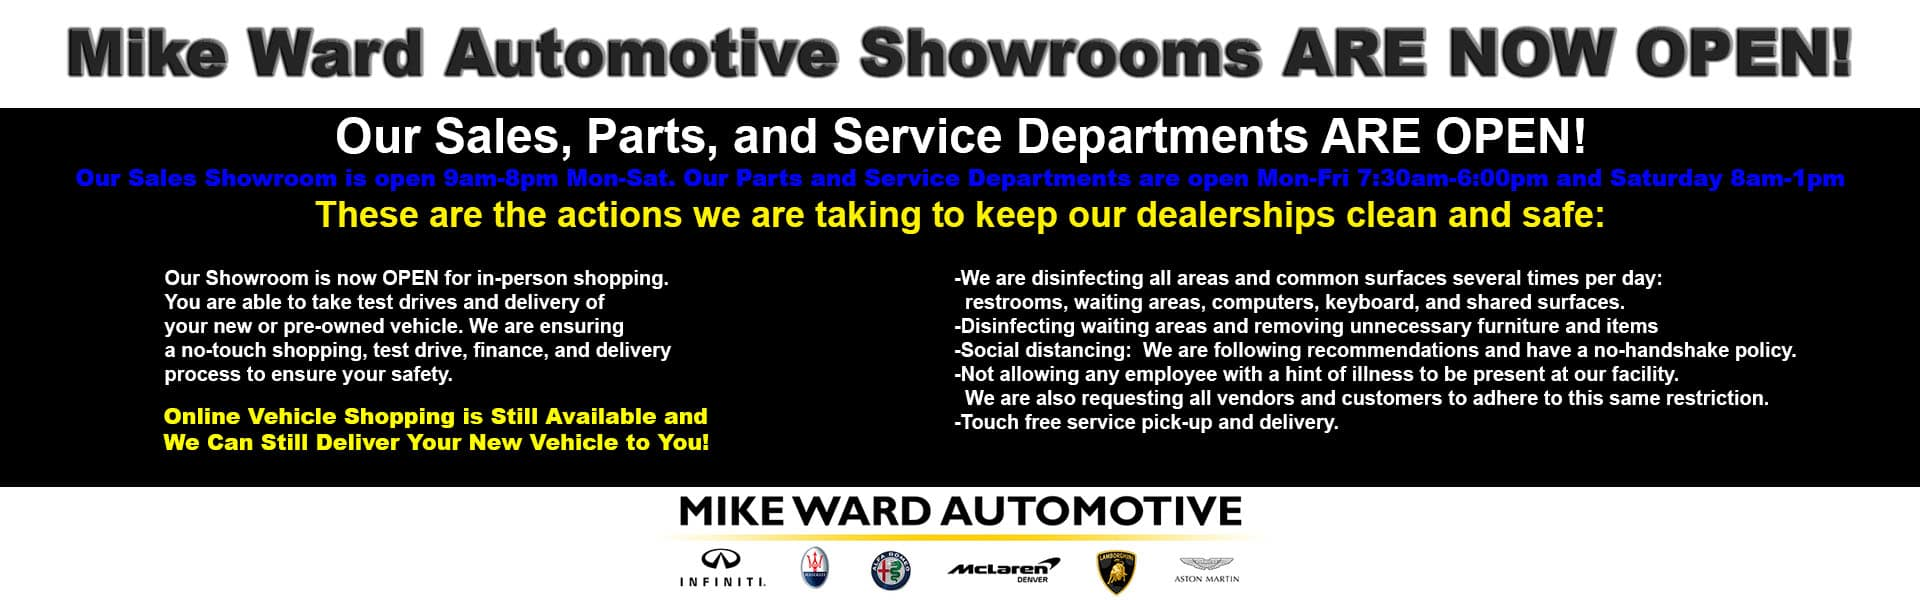 Mike Ward showrooms are open!